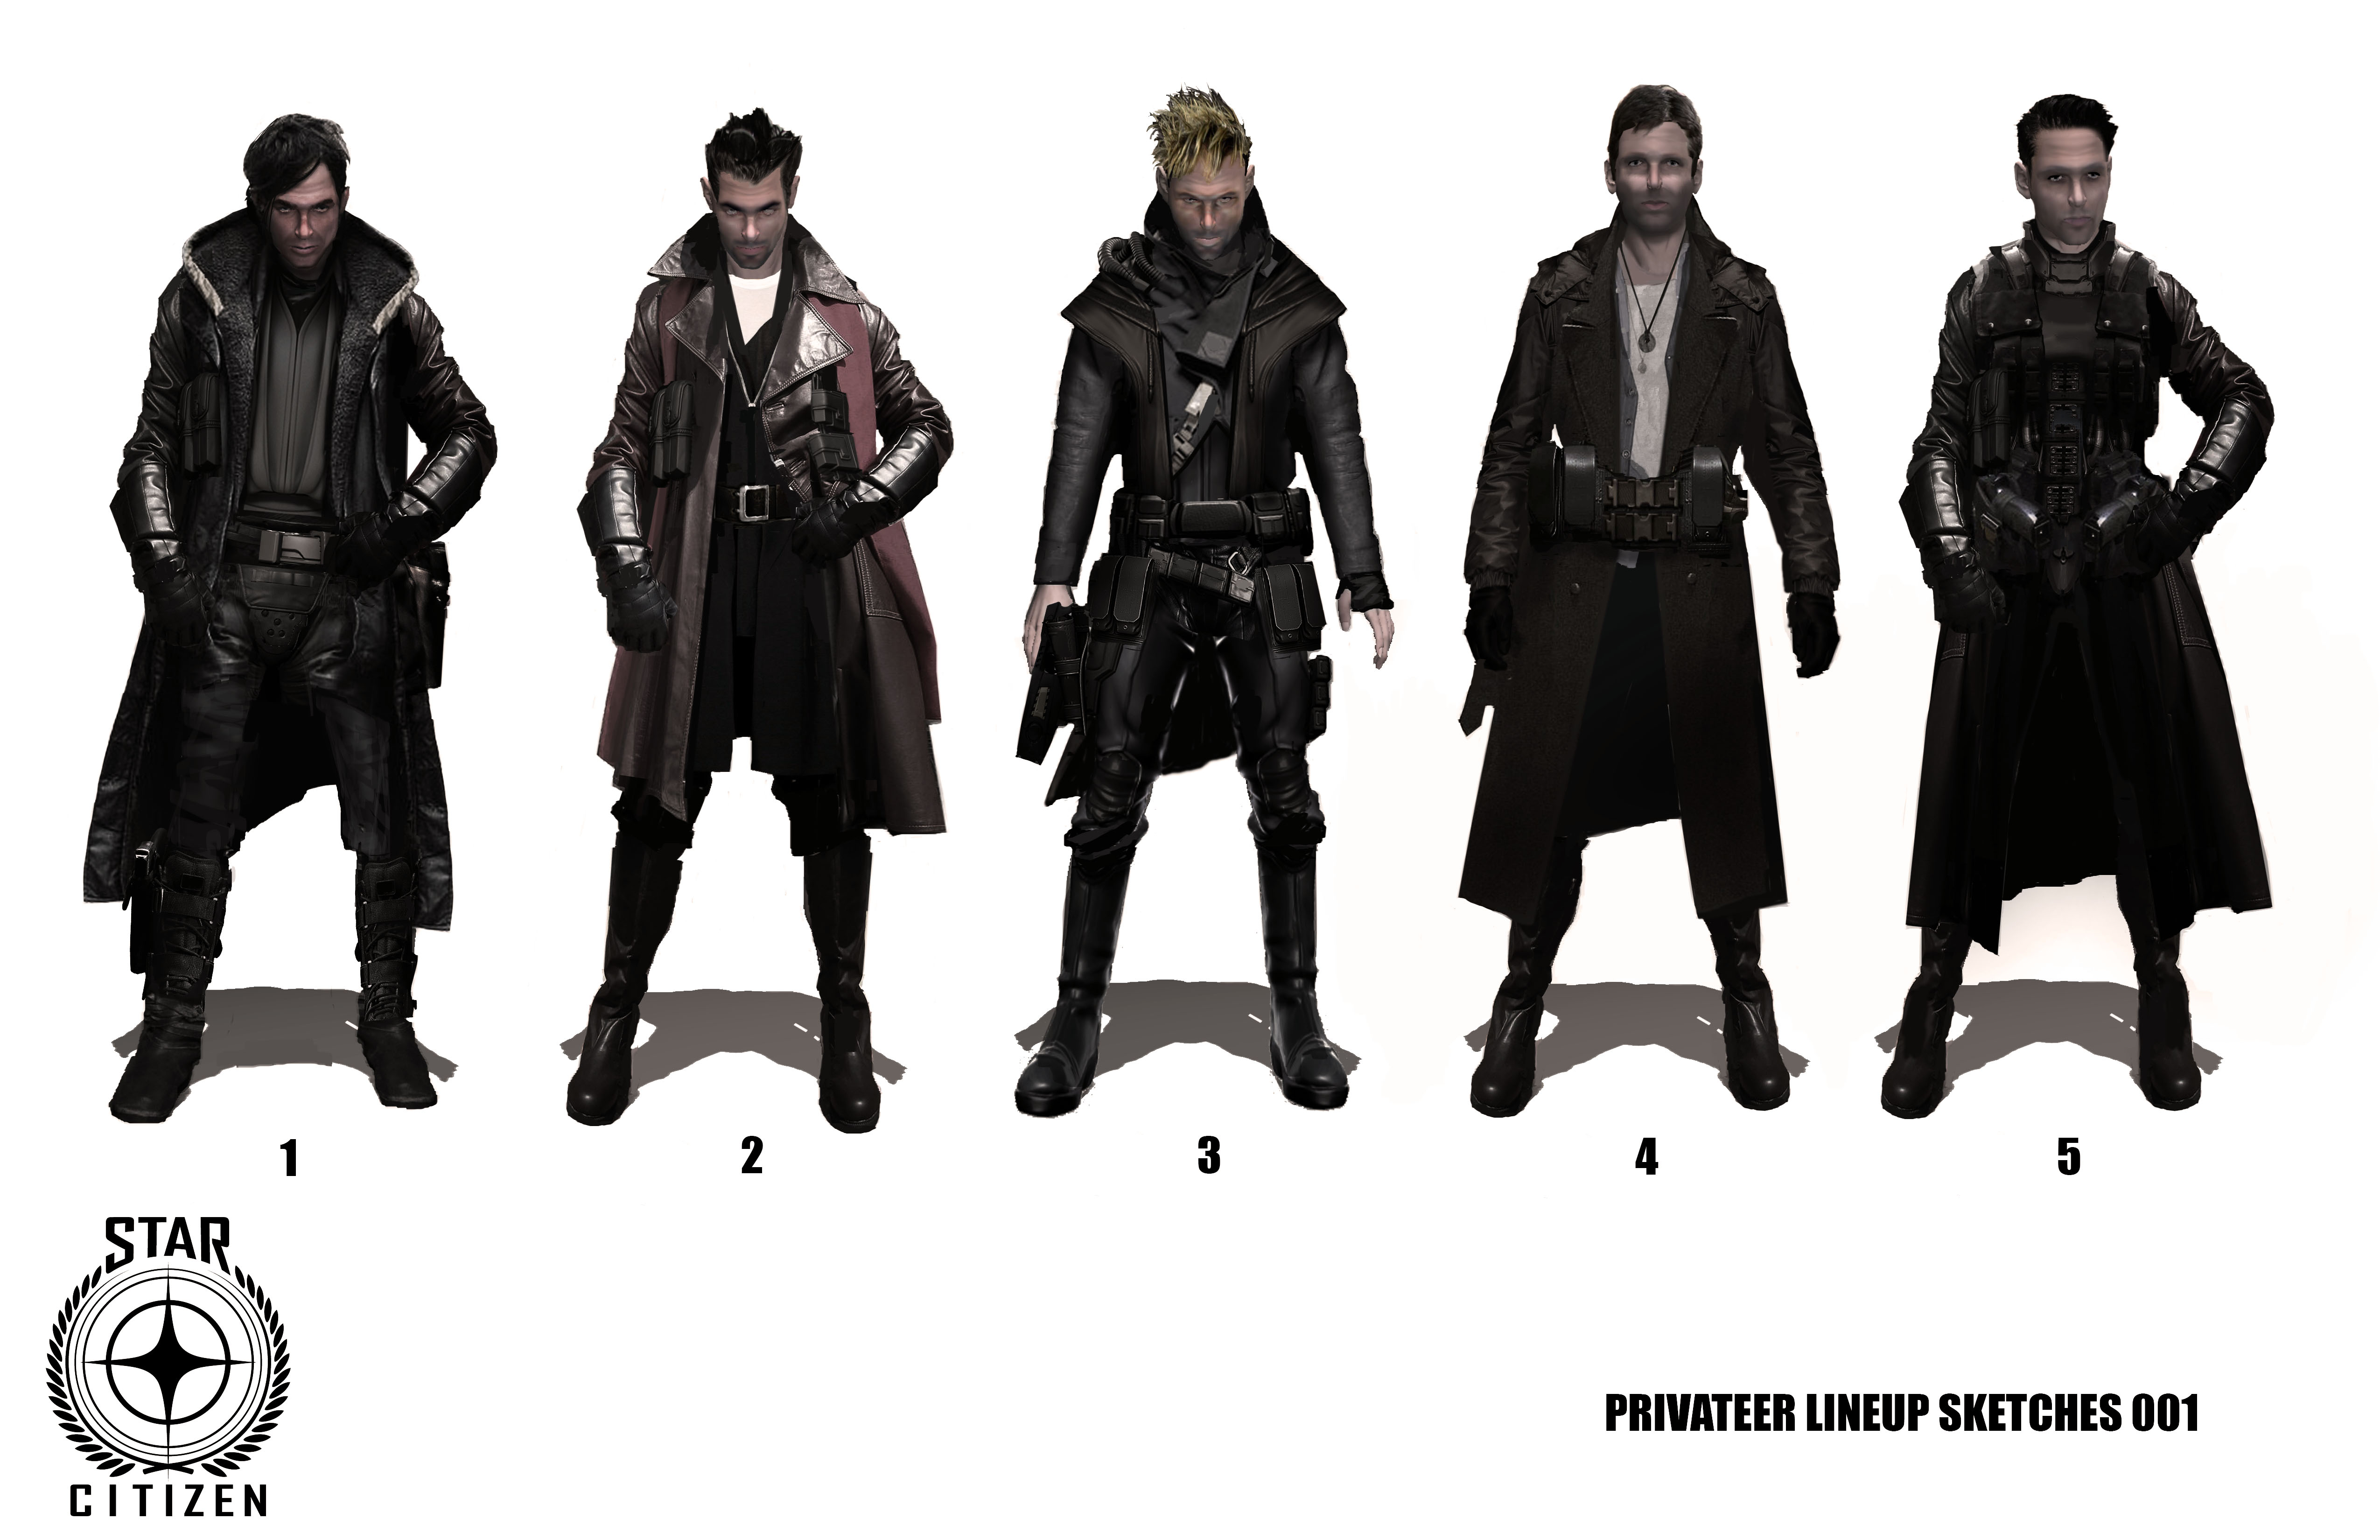 star citizen character slots